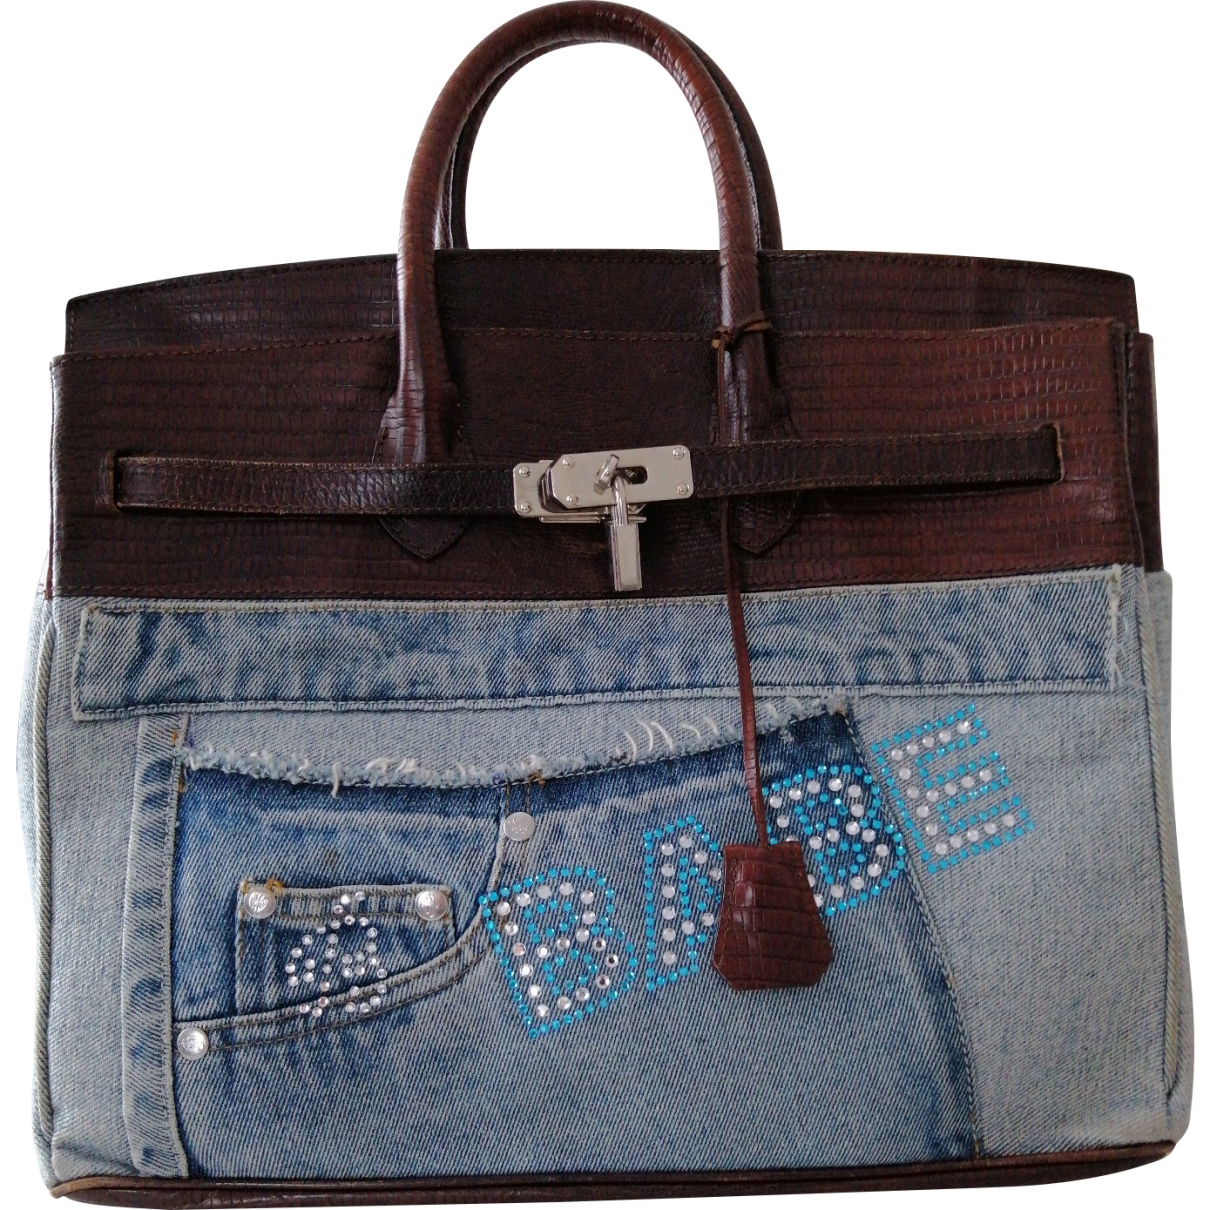 Blumarine \N Multicolour Denim - Jeans handbag for Women \N